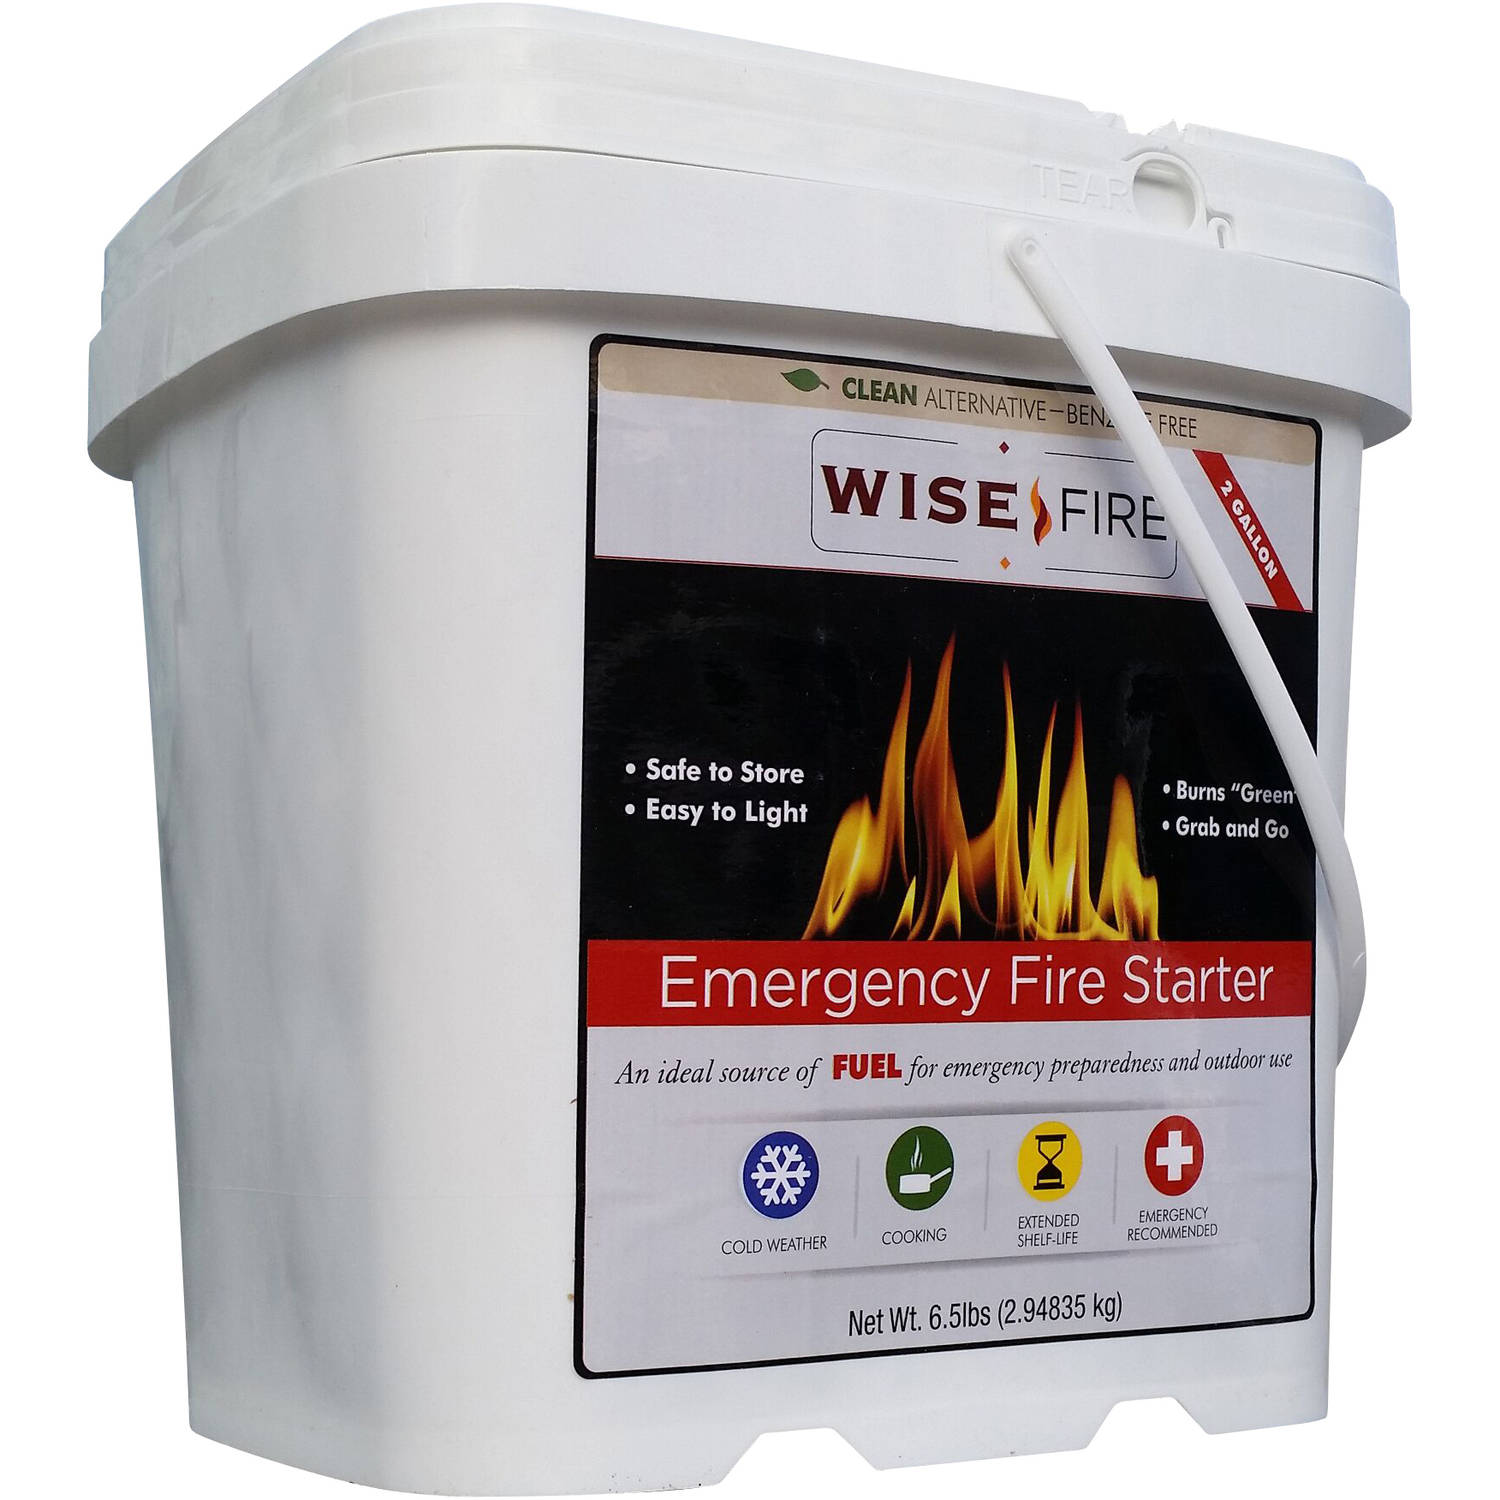 WiseFire Emergency Fire Starter, 6.5 lbs by Wise Company, Inc